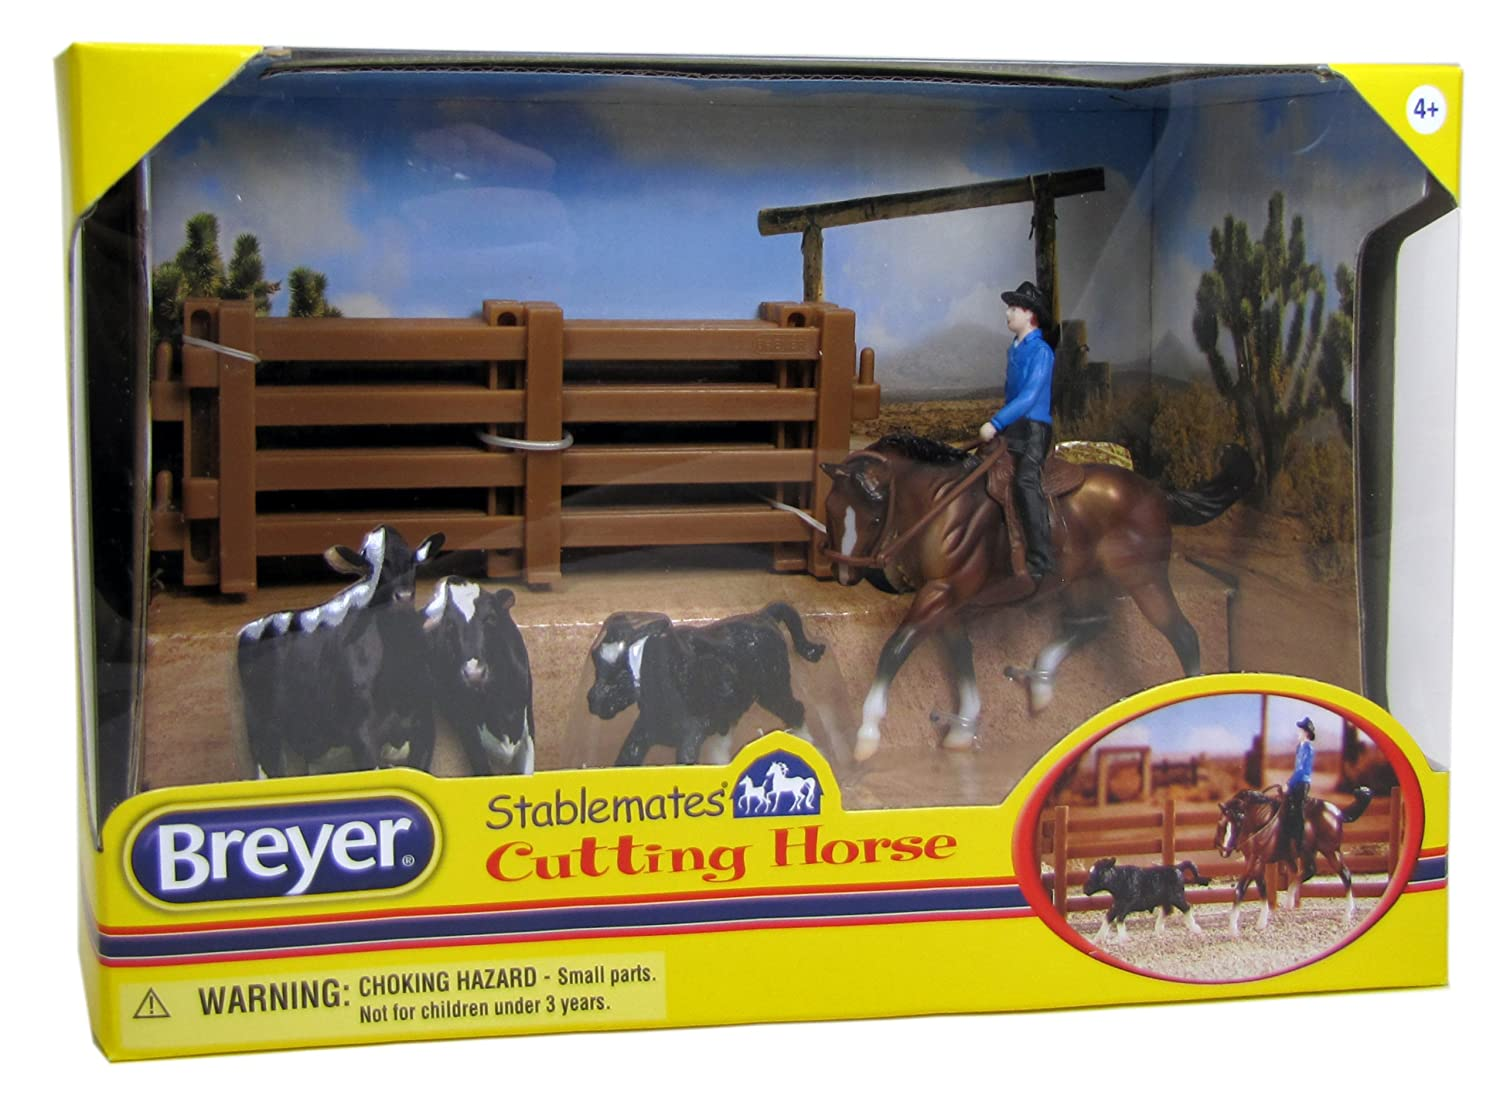 Breyer 1 32 Scale Stablemates Cutting Horse Play Set